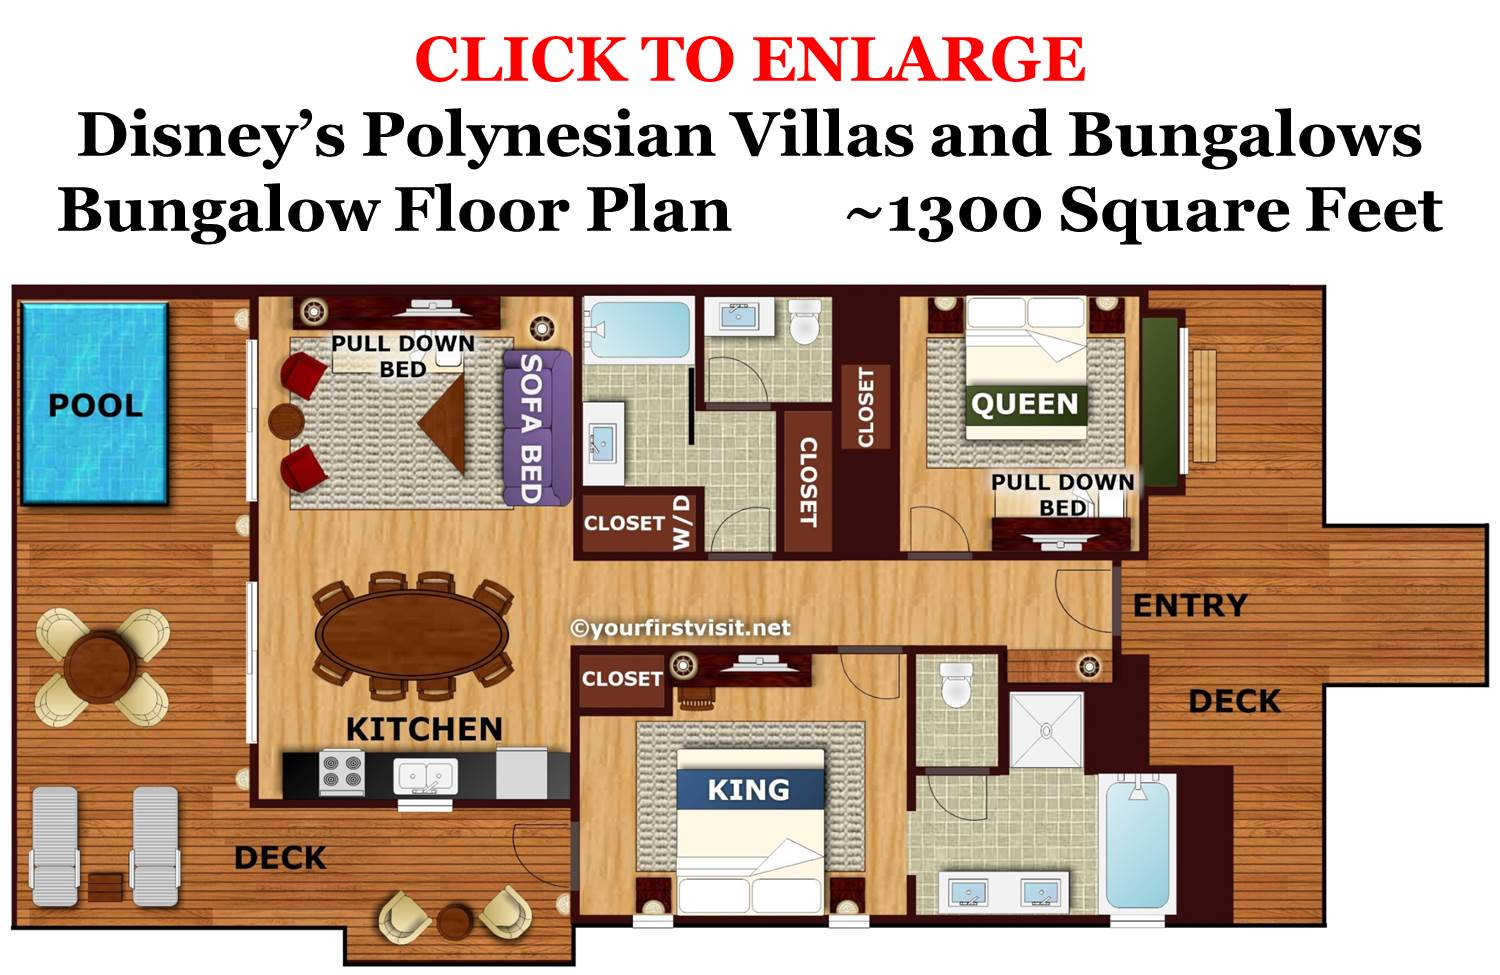 Bungalow-Floor-Plan-Disneys-Polynesian-Villas-and-Bungalows-from-yourfirstvisit.net_